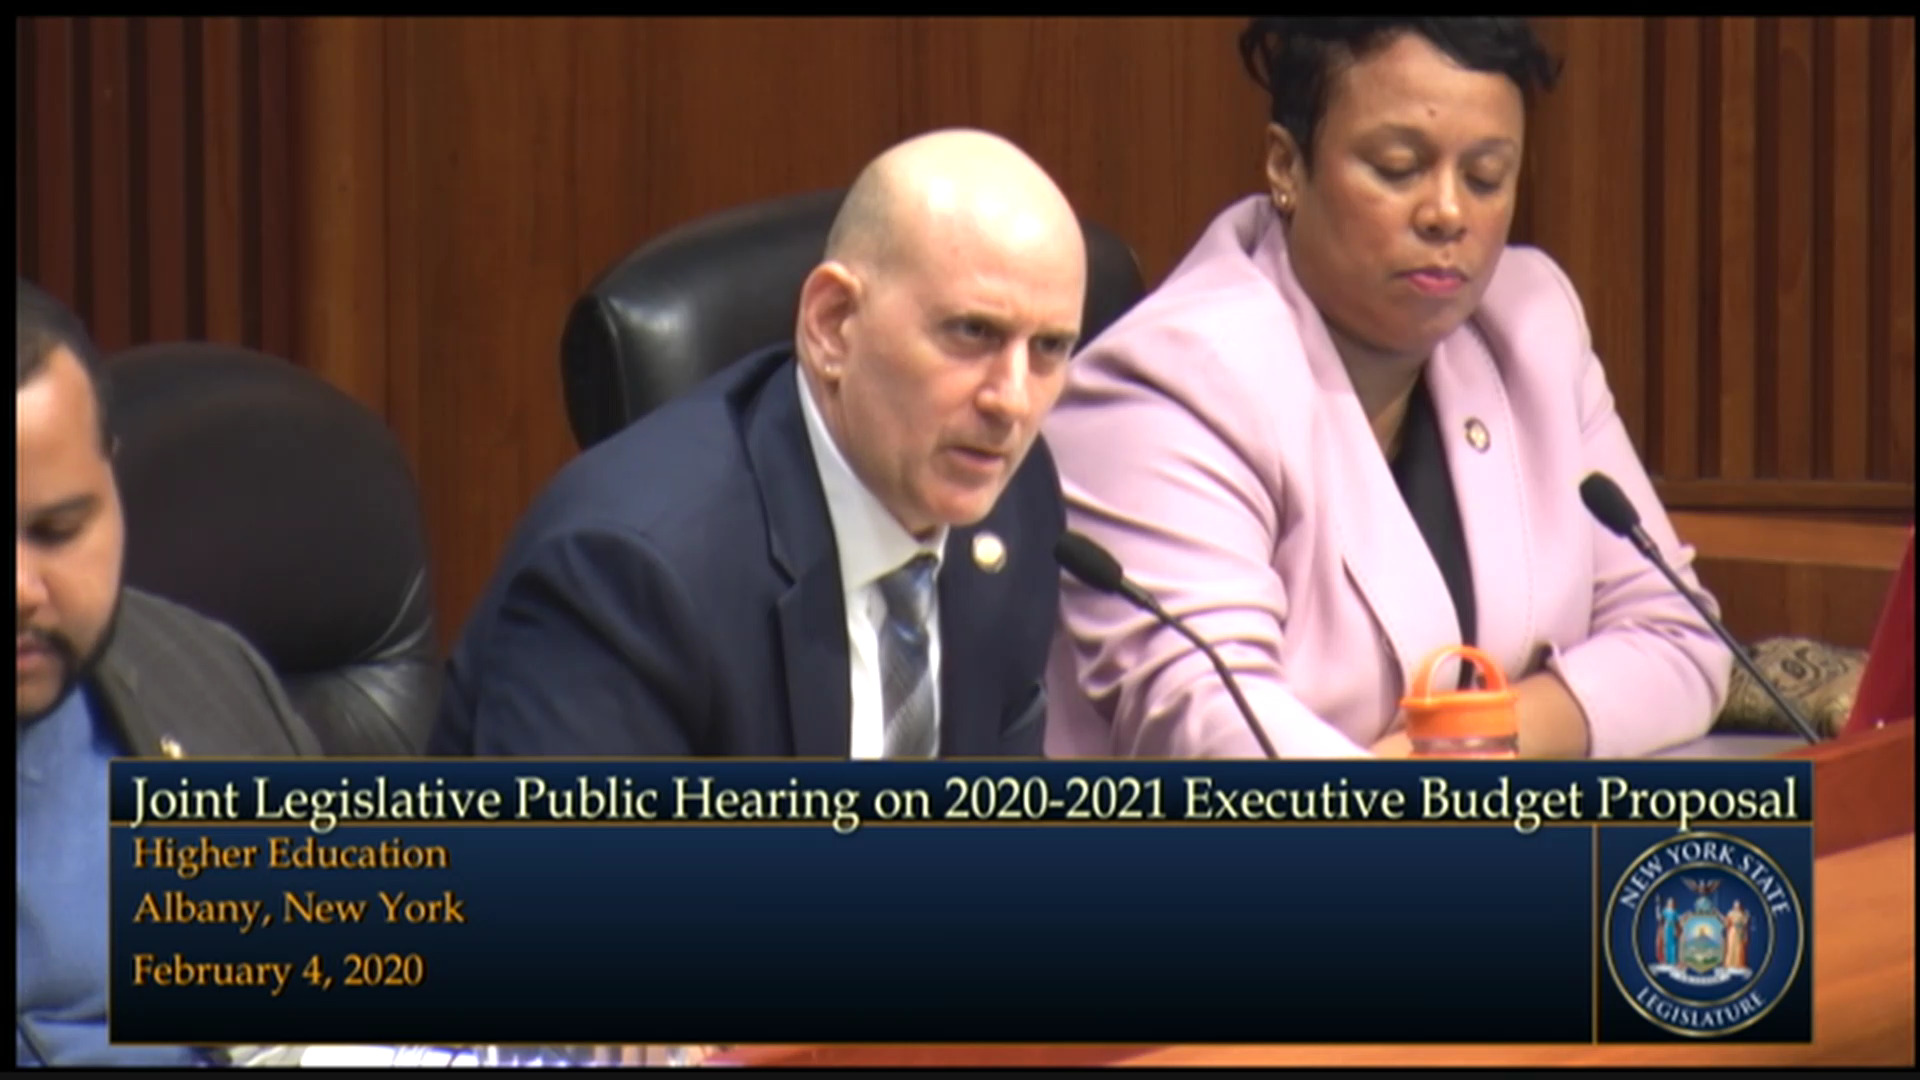 CUNY Chancellor Testifies During Higher Education Budget Hearing